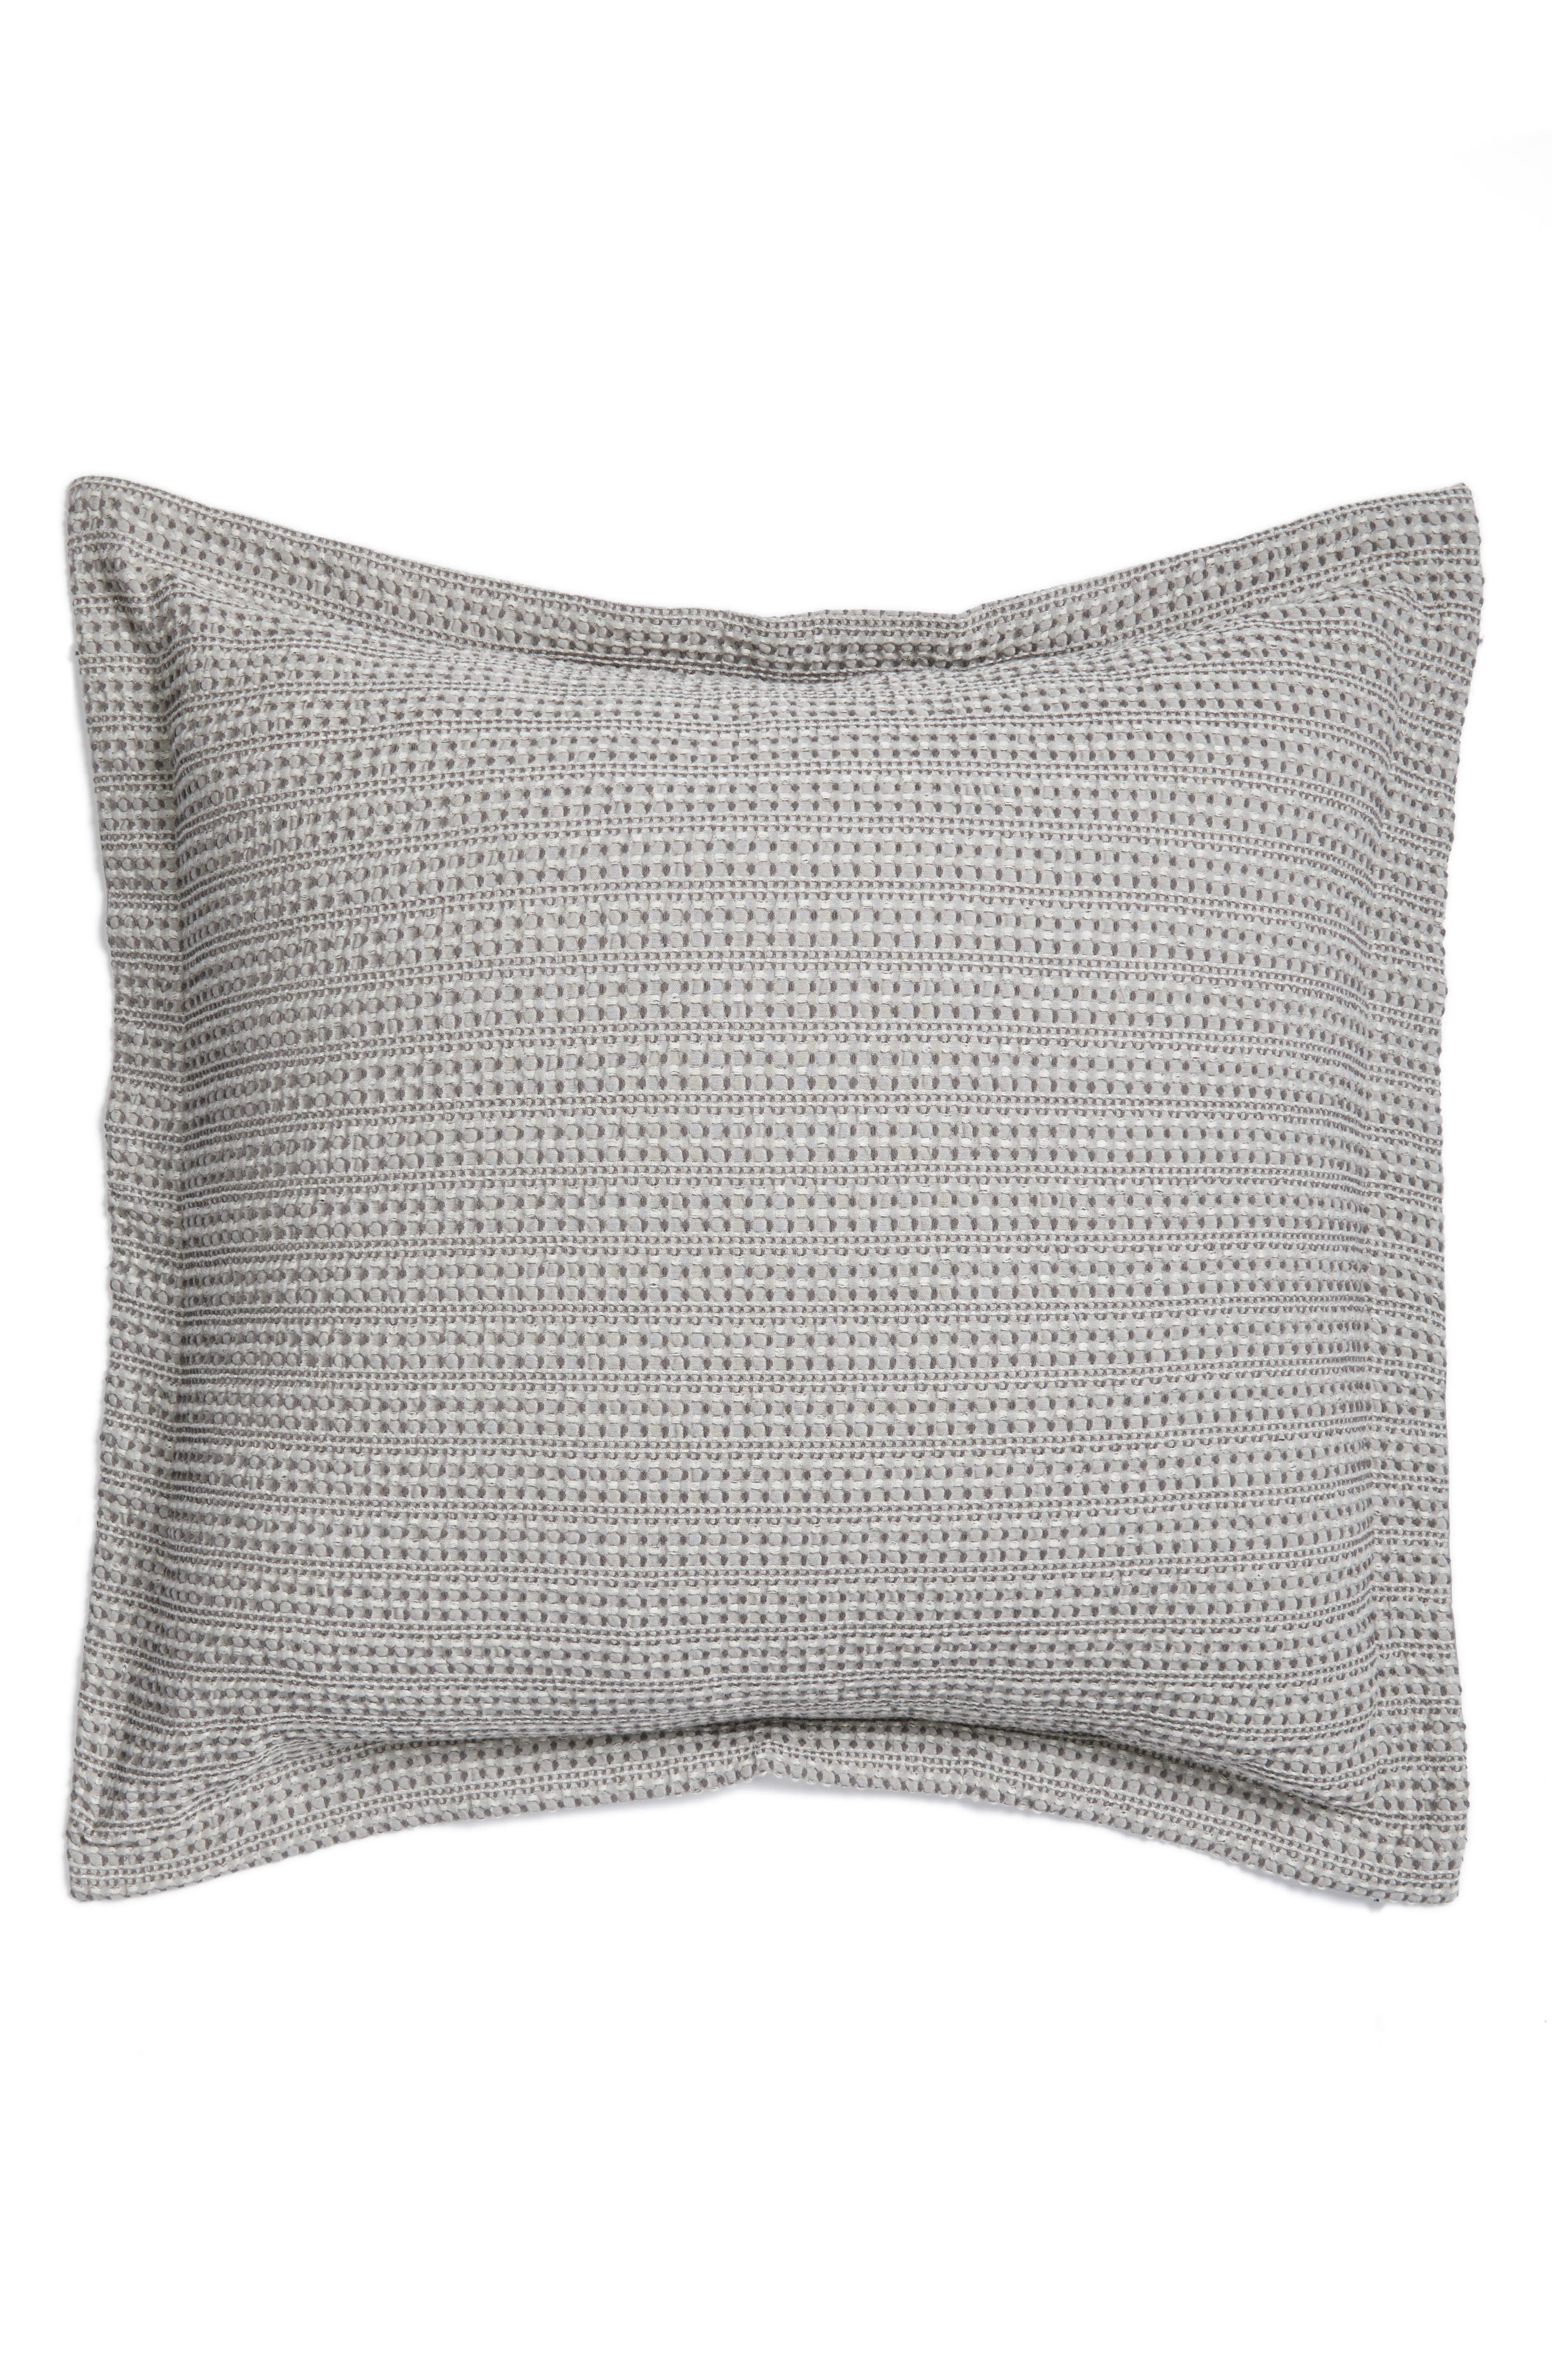 Alternate Image 1 Selected - Levtex Stitched Accent Pillow